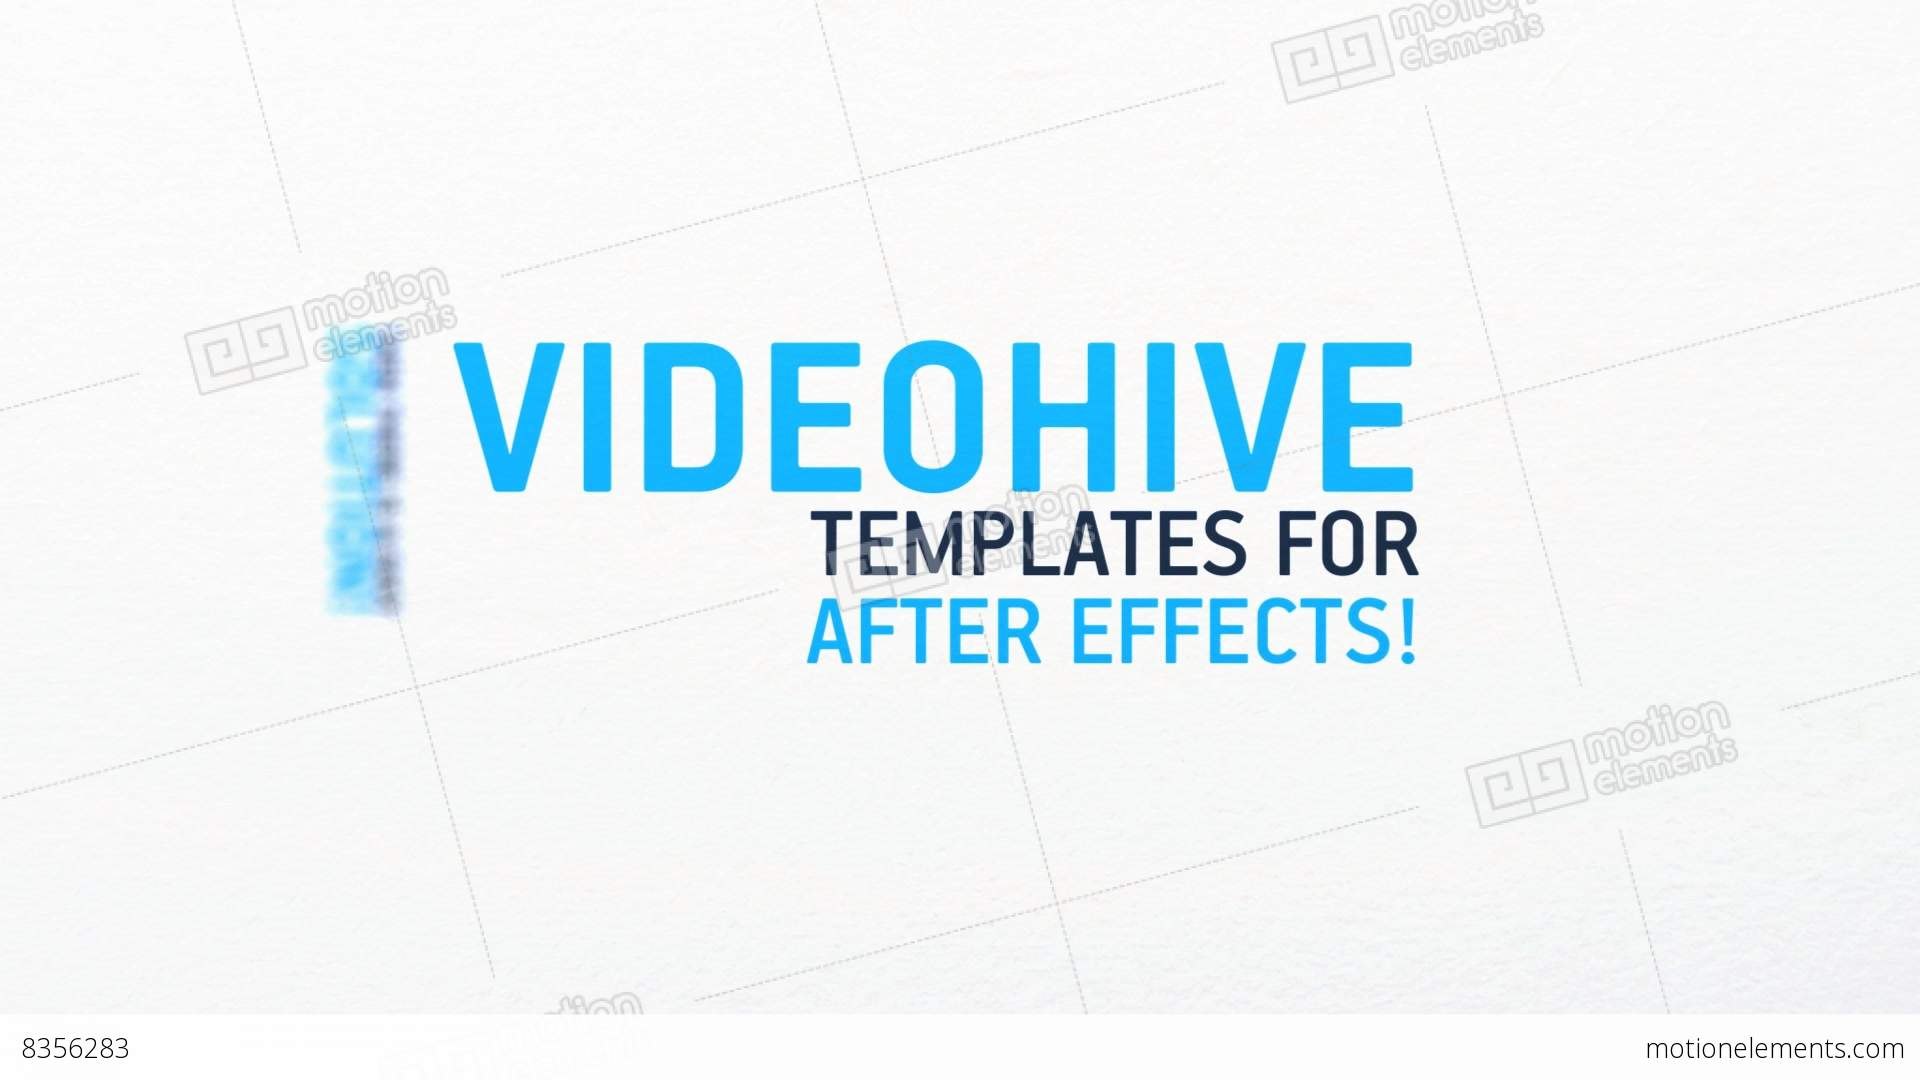 Typography Template After Effects - Costumepartyrun